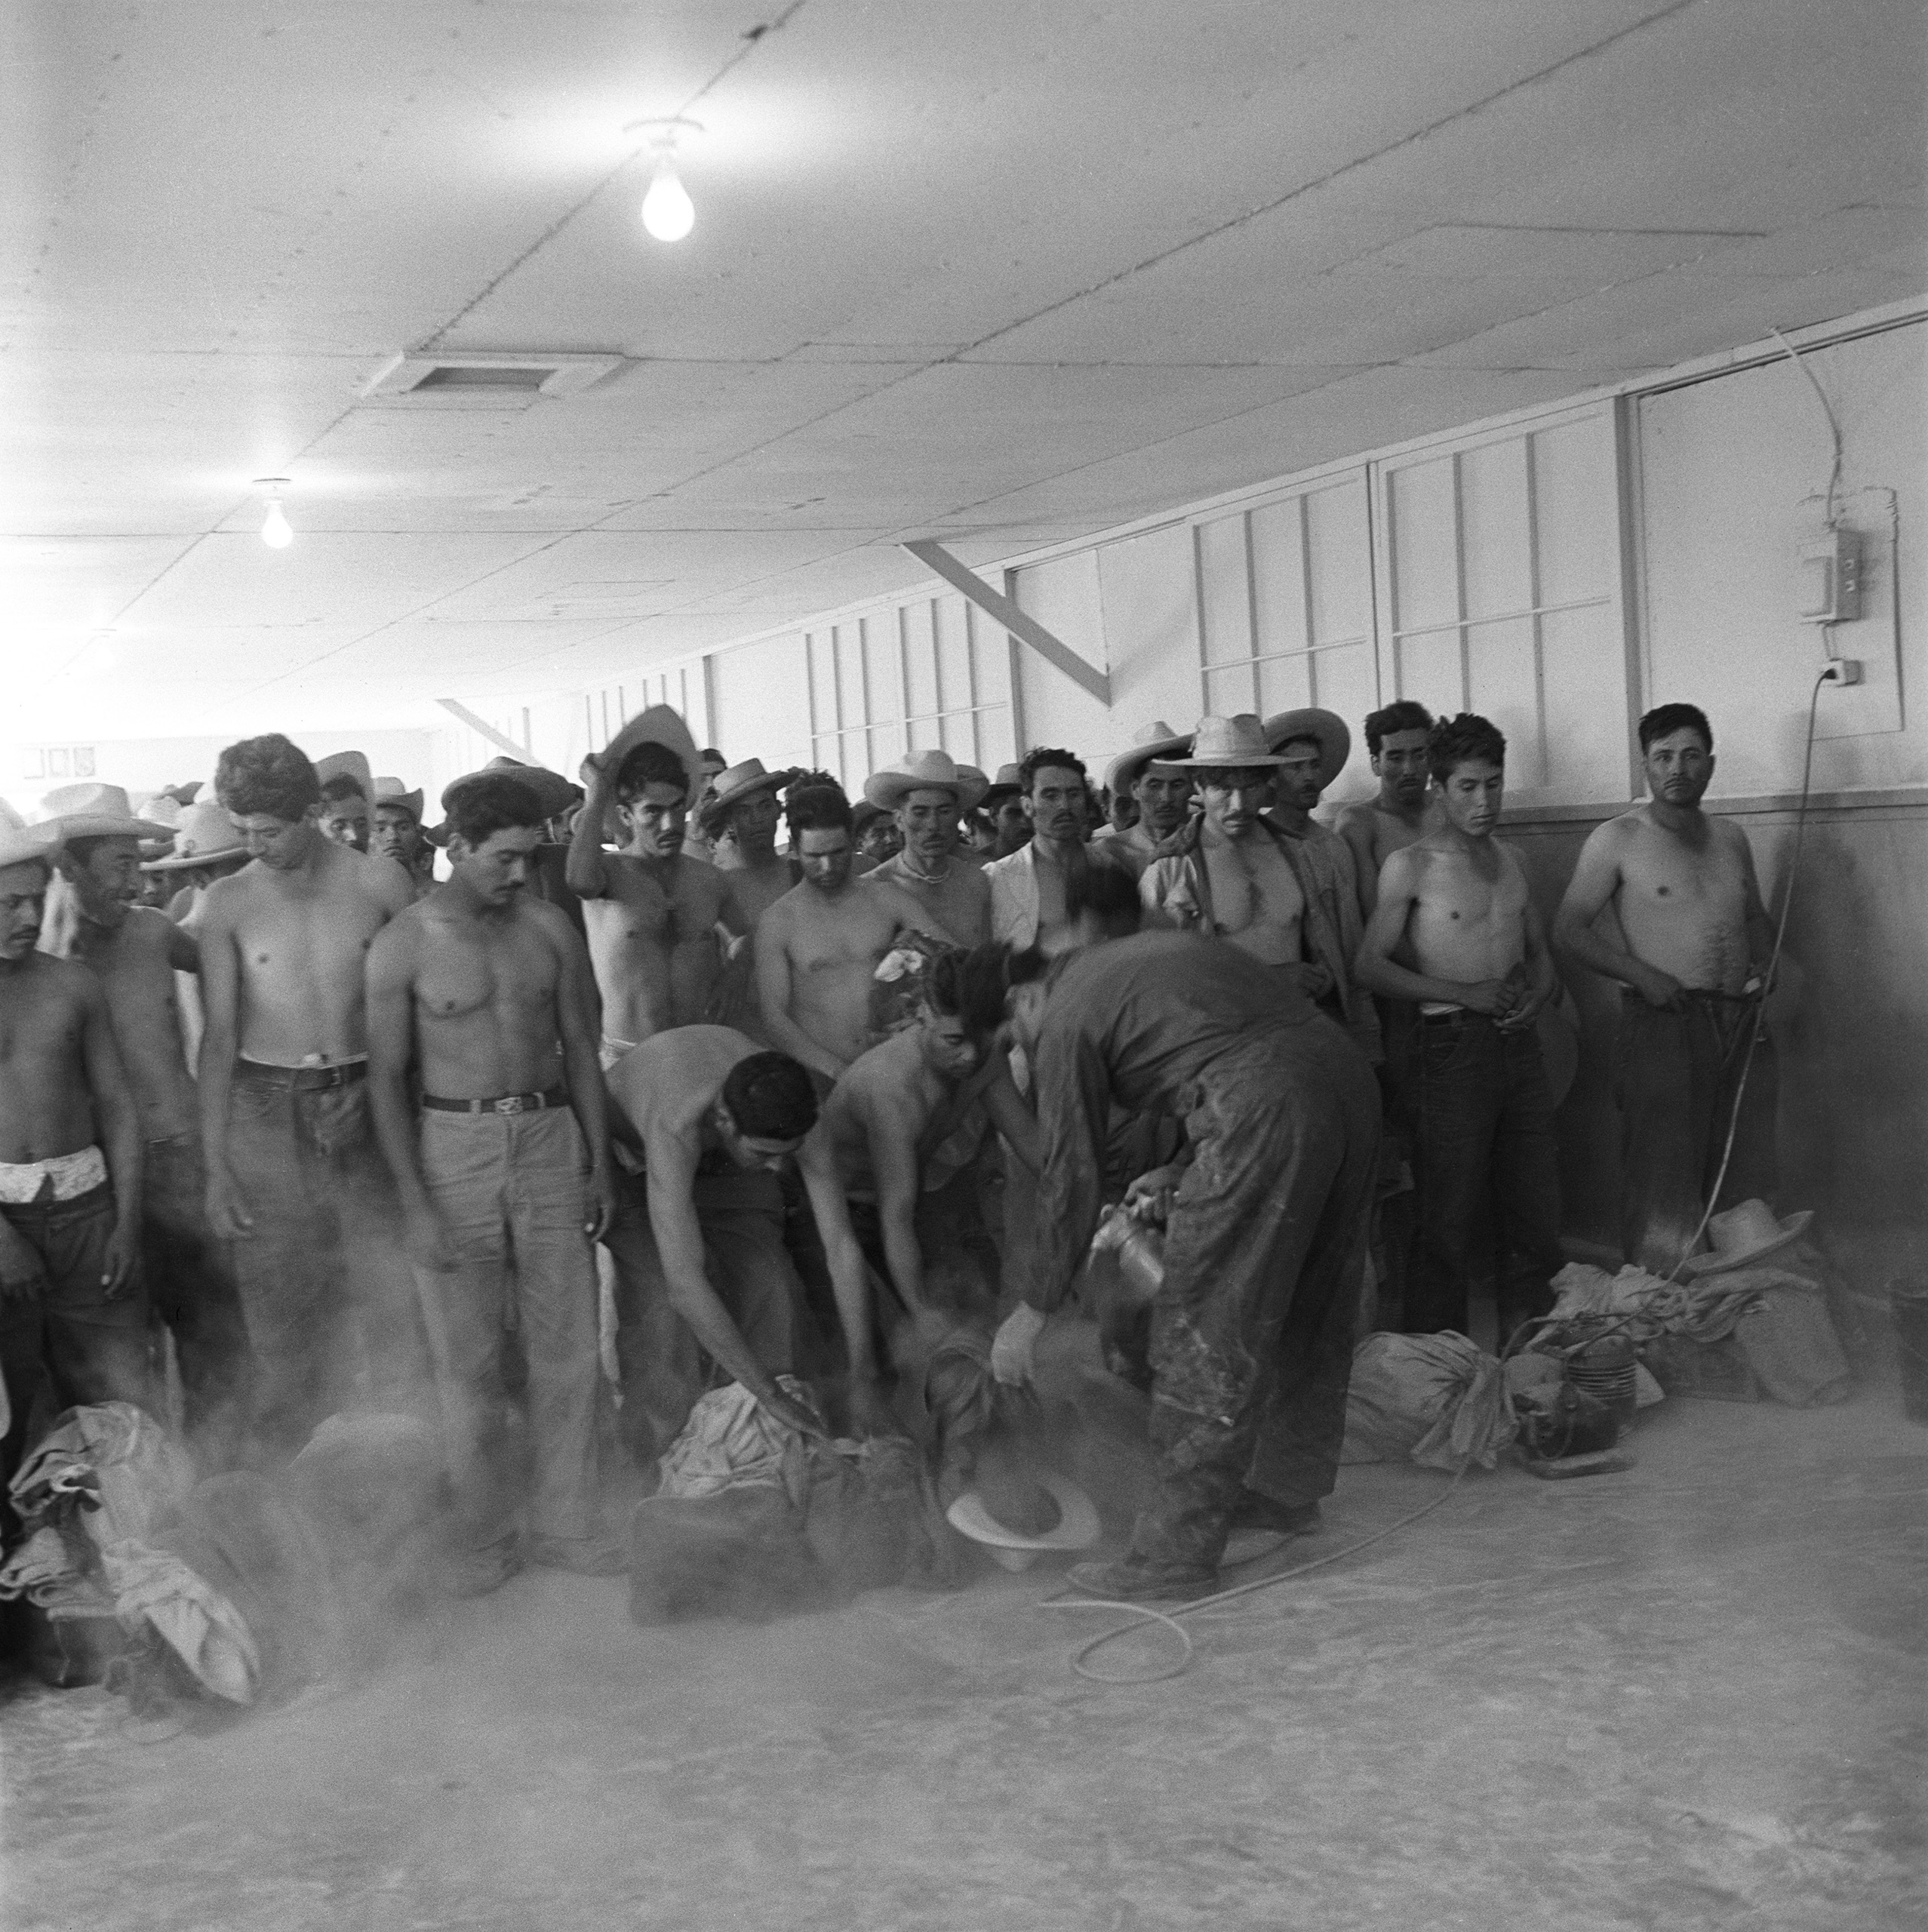 After the various medical examinations, the men are dusted with DDT.